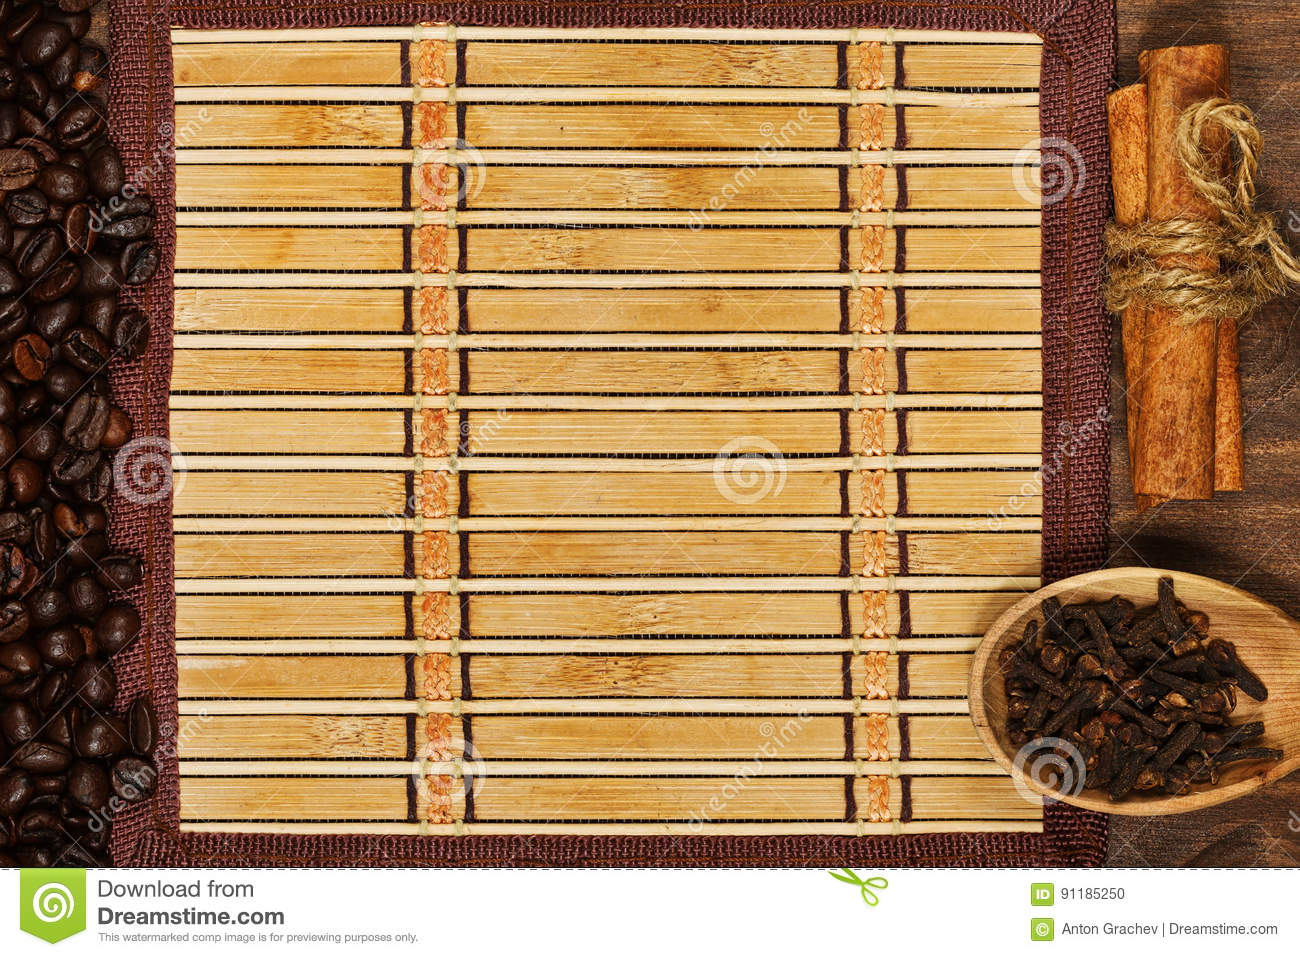 Bamboo mat with frame of coffee beans and condiments